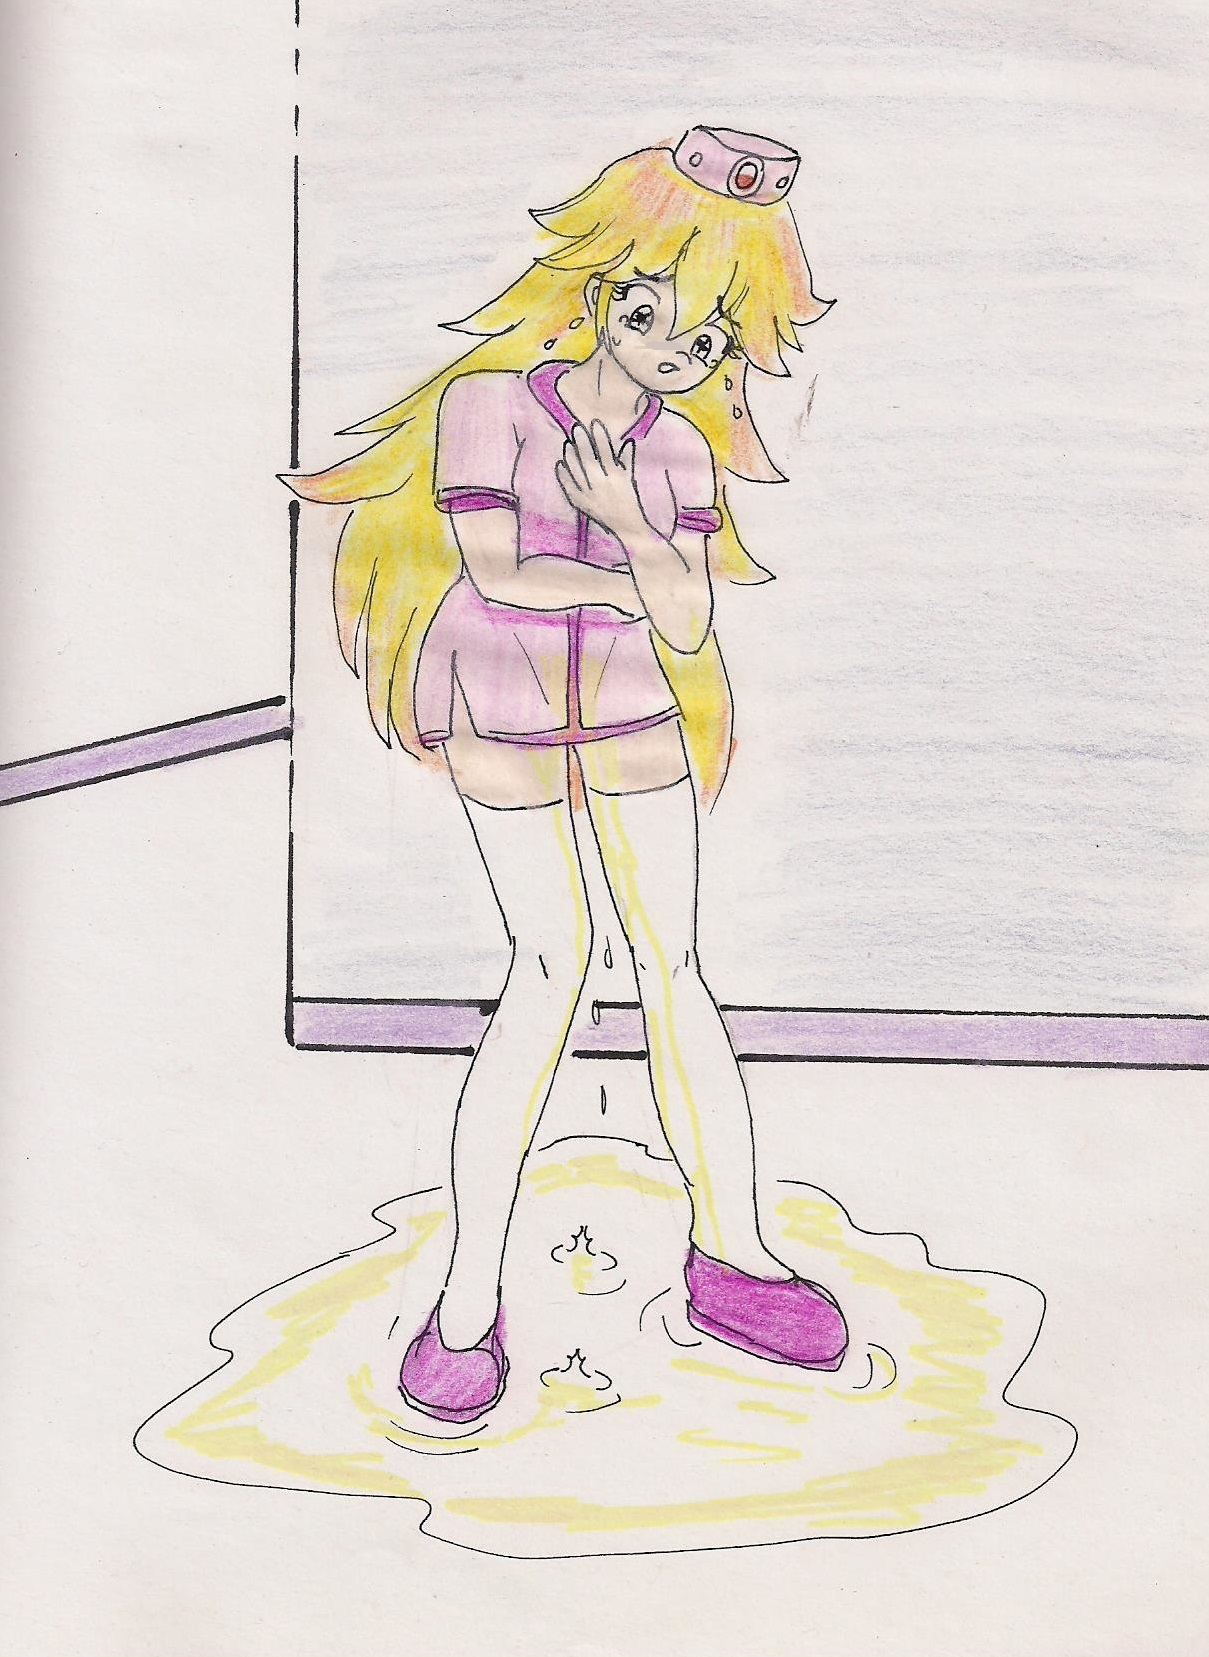 Princess peach and a futa 2